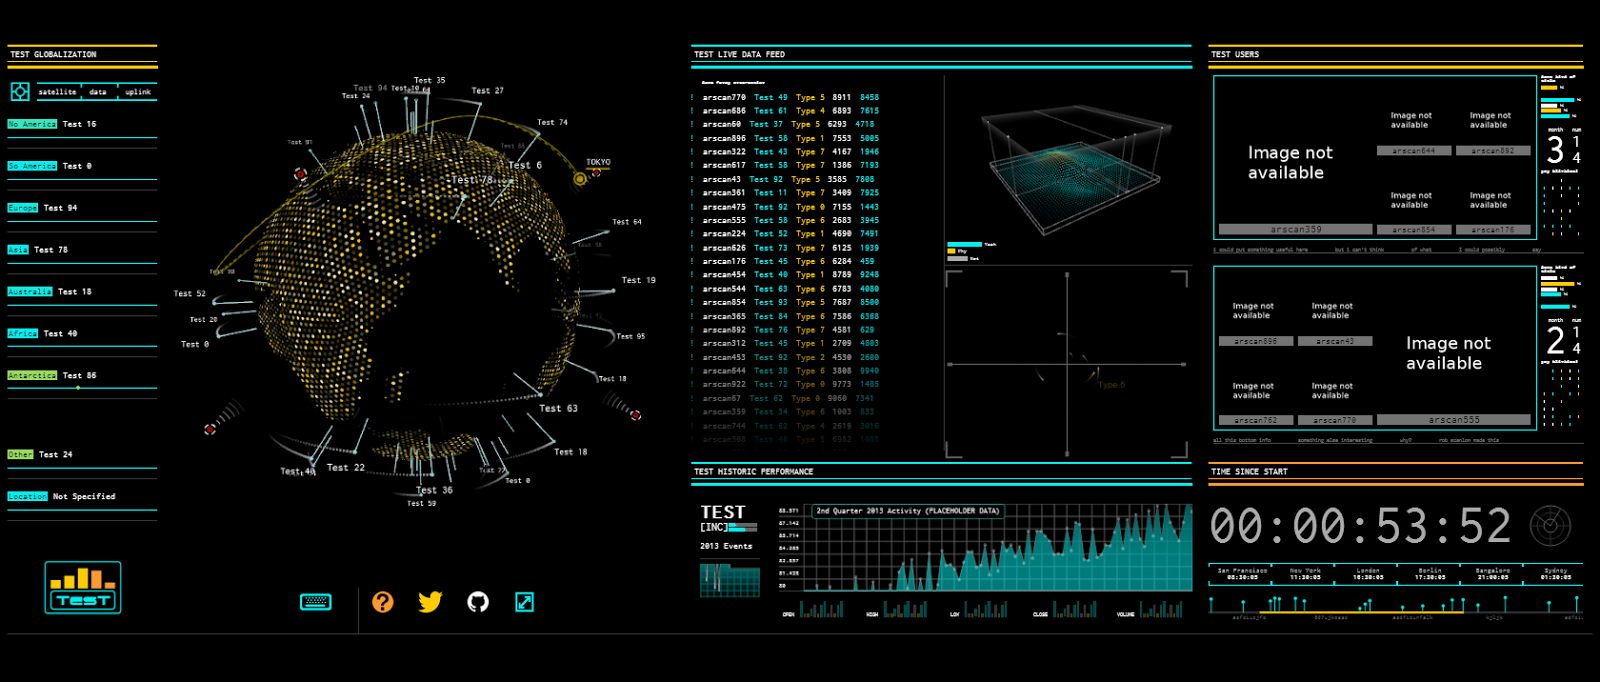 Cool WebGL demo: Tron dashboard